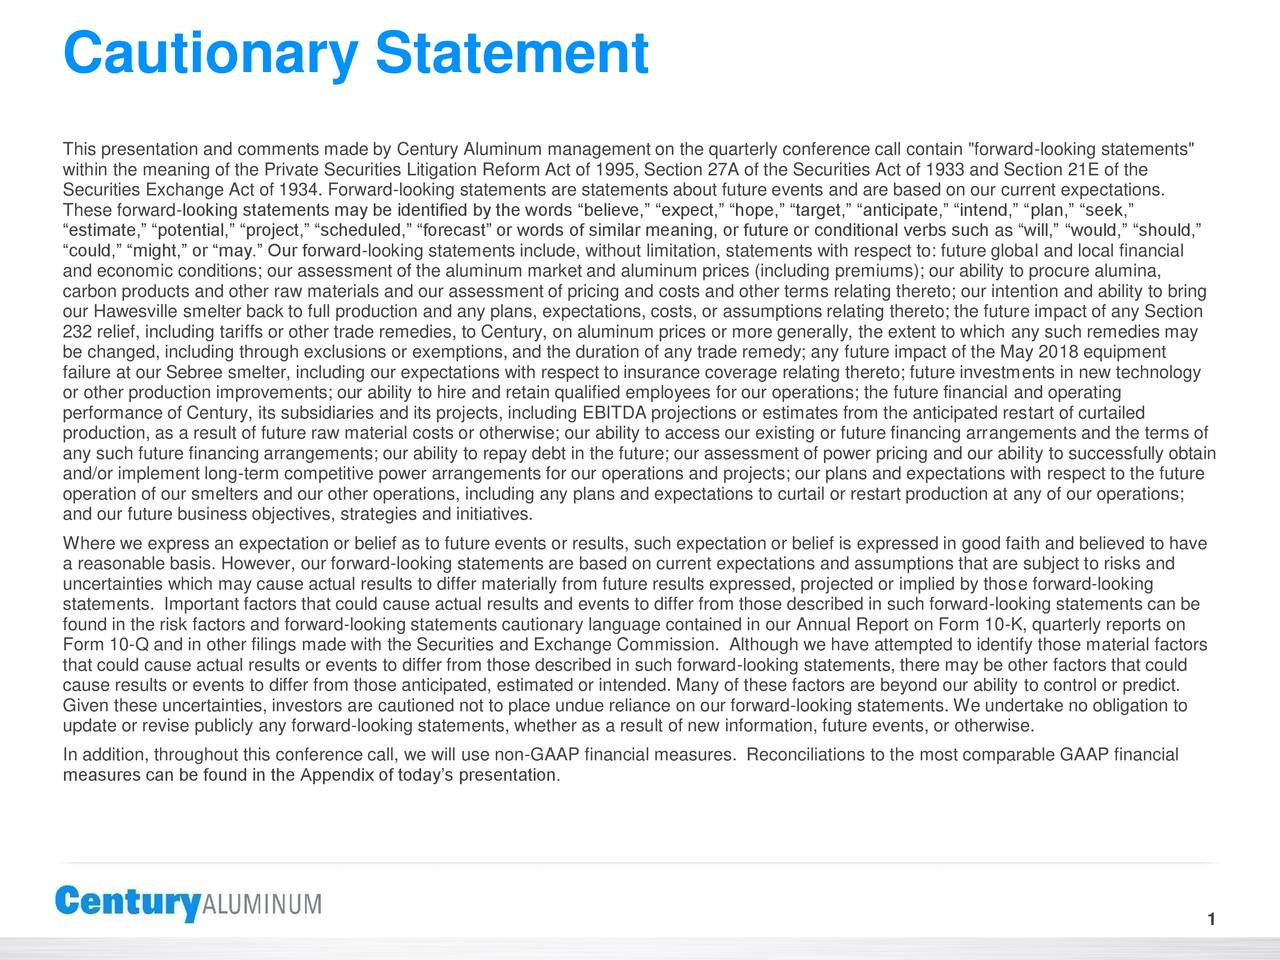 """This presentation and comments made by Century Aluminum management on the quarterly conference call contain """"forward-looking statements"""" within the meaning of the Private Securities Litigation Reform Act of 1995, Section 27A of the Securities Act of 1933 and Section 21E of the Securities Exchange Act of 1934. Forward-looking statements are statements about future events and are based on our current expectations. These forward-looking statements may be identified by the words """"believe,"""" """"expect,"""" """"hope,"""" """"target,"""" """"anticipate,"""" """"intend,"""" """"plan,"""" """"seek,"""" """"estimate,"""" """"potential,"""" """"project,"""" """"scheduled,"""" """"forecast"""" or words of similar meaning, or future or conditional verbs such as """"will,"""" """"would,"""" """"should,"""" """"could,"""" """"might,"""" or """"may."""" Our forward-looking statements include, without limitation, statements with respect to: future global and local financial and economic conditions; our assessment of the aluminum market and aluminum prices (including premiums); our ability to procure alumina, carbon products and other raw materials and our assessment of pricing and costs and other terms relating thereto; our intention and ability to bring our Hawesville smelter back to full production and any plans, expectations, costs, or assumptions relating thereto; the future impact of any Section 232 relief, including tariffs or other trade remedies, to Century, on aluminum prices or more generally, the extent to which any such remedies may be changed, including through exclusions or exemptions, and the duration of any trade remedy; any future impact of the May 2018 equipment failure at our Sebree smelter, including our expectations with respect to insurance coverage relating thereto; future investments in new technology or other production improvements; our ability to hire and retain qualified employees for our operations; the future financial and operating performance of Century, its subsidiaries and its projects, including EBITDA projections or estimates from the anticipated restar"""